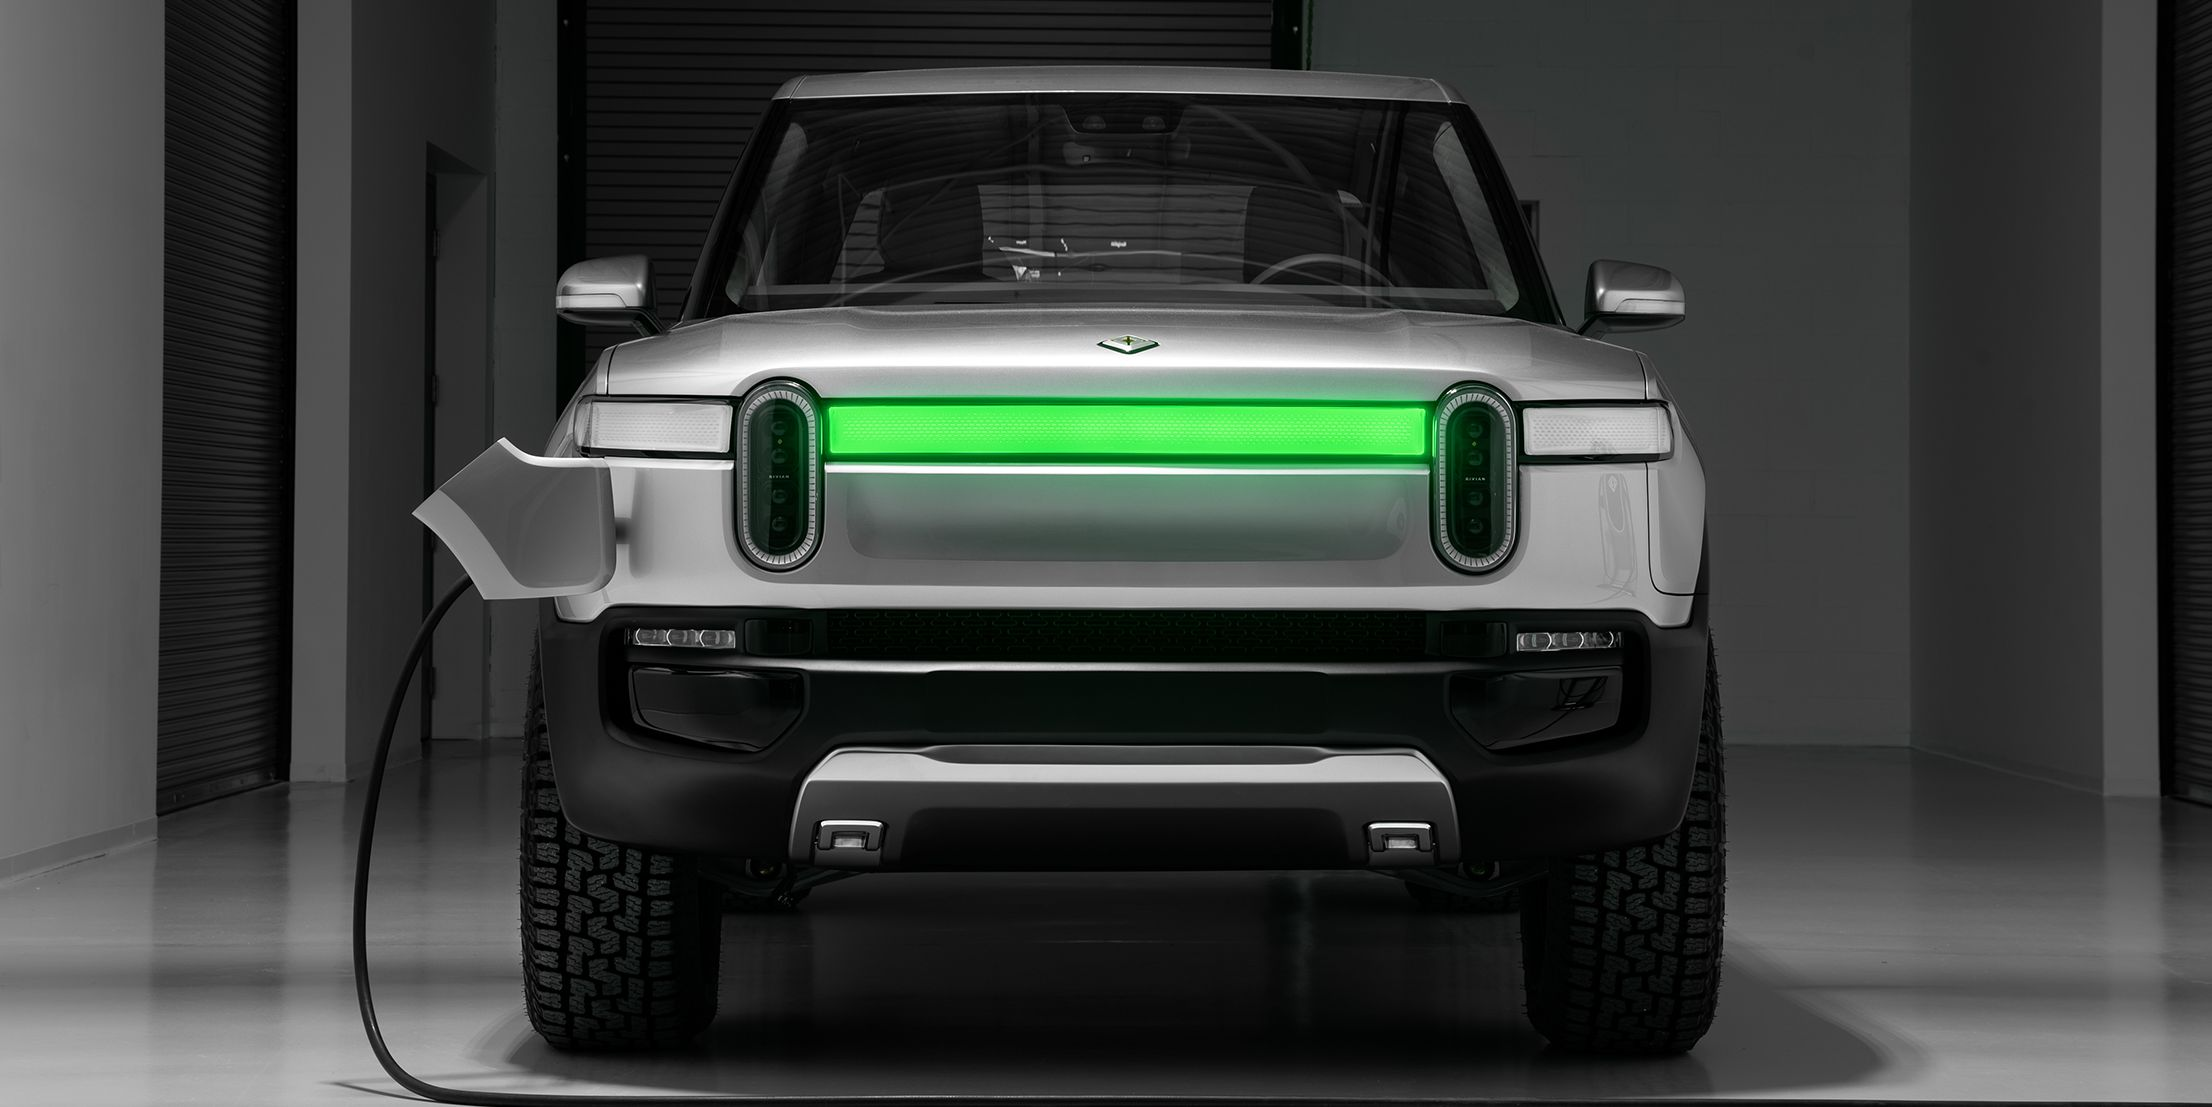 Ford Is Getting a New Electric Vehicle from Michigan Startup Rivian